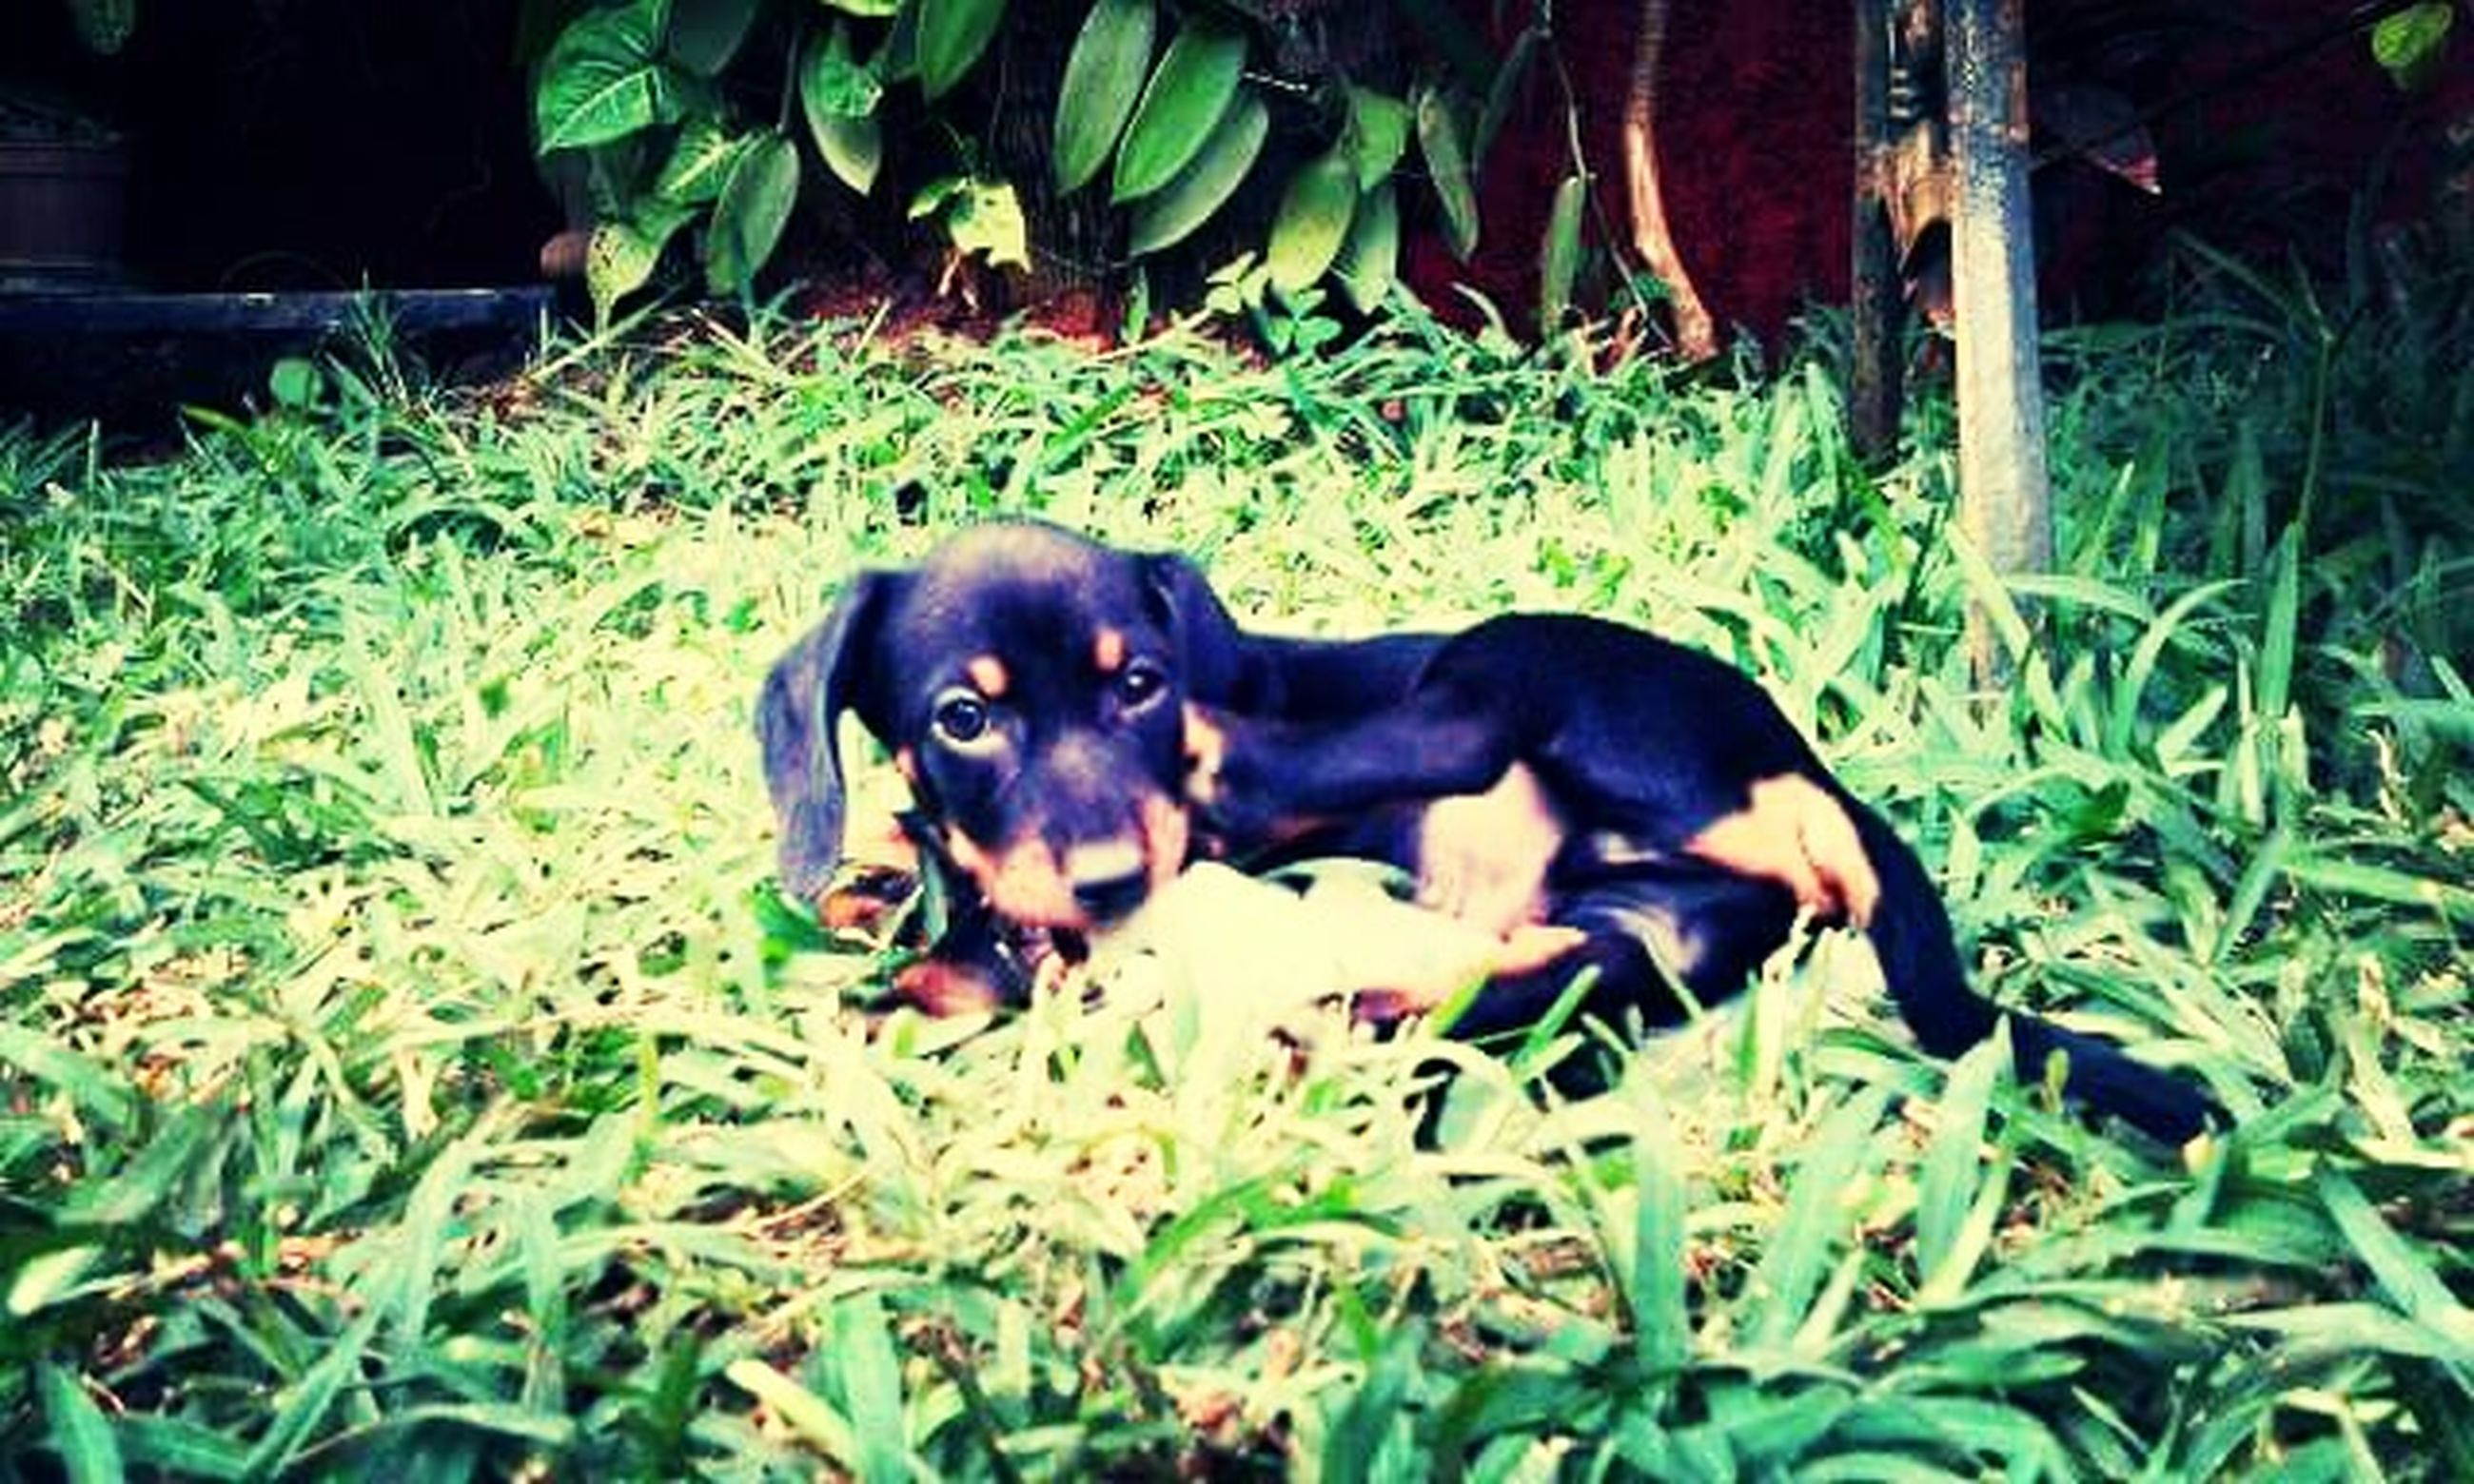 animal themes, pets, dog, domestic animals, one animal, mammal, grass, field, black color, green color, grassy, looking at camera, portrait, plant, pet collar, high angle view, relaxation, two animals, full length, sitting